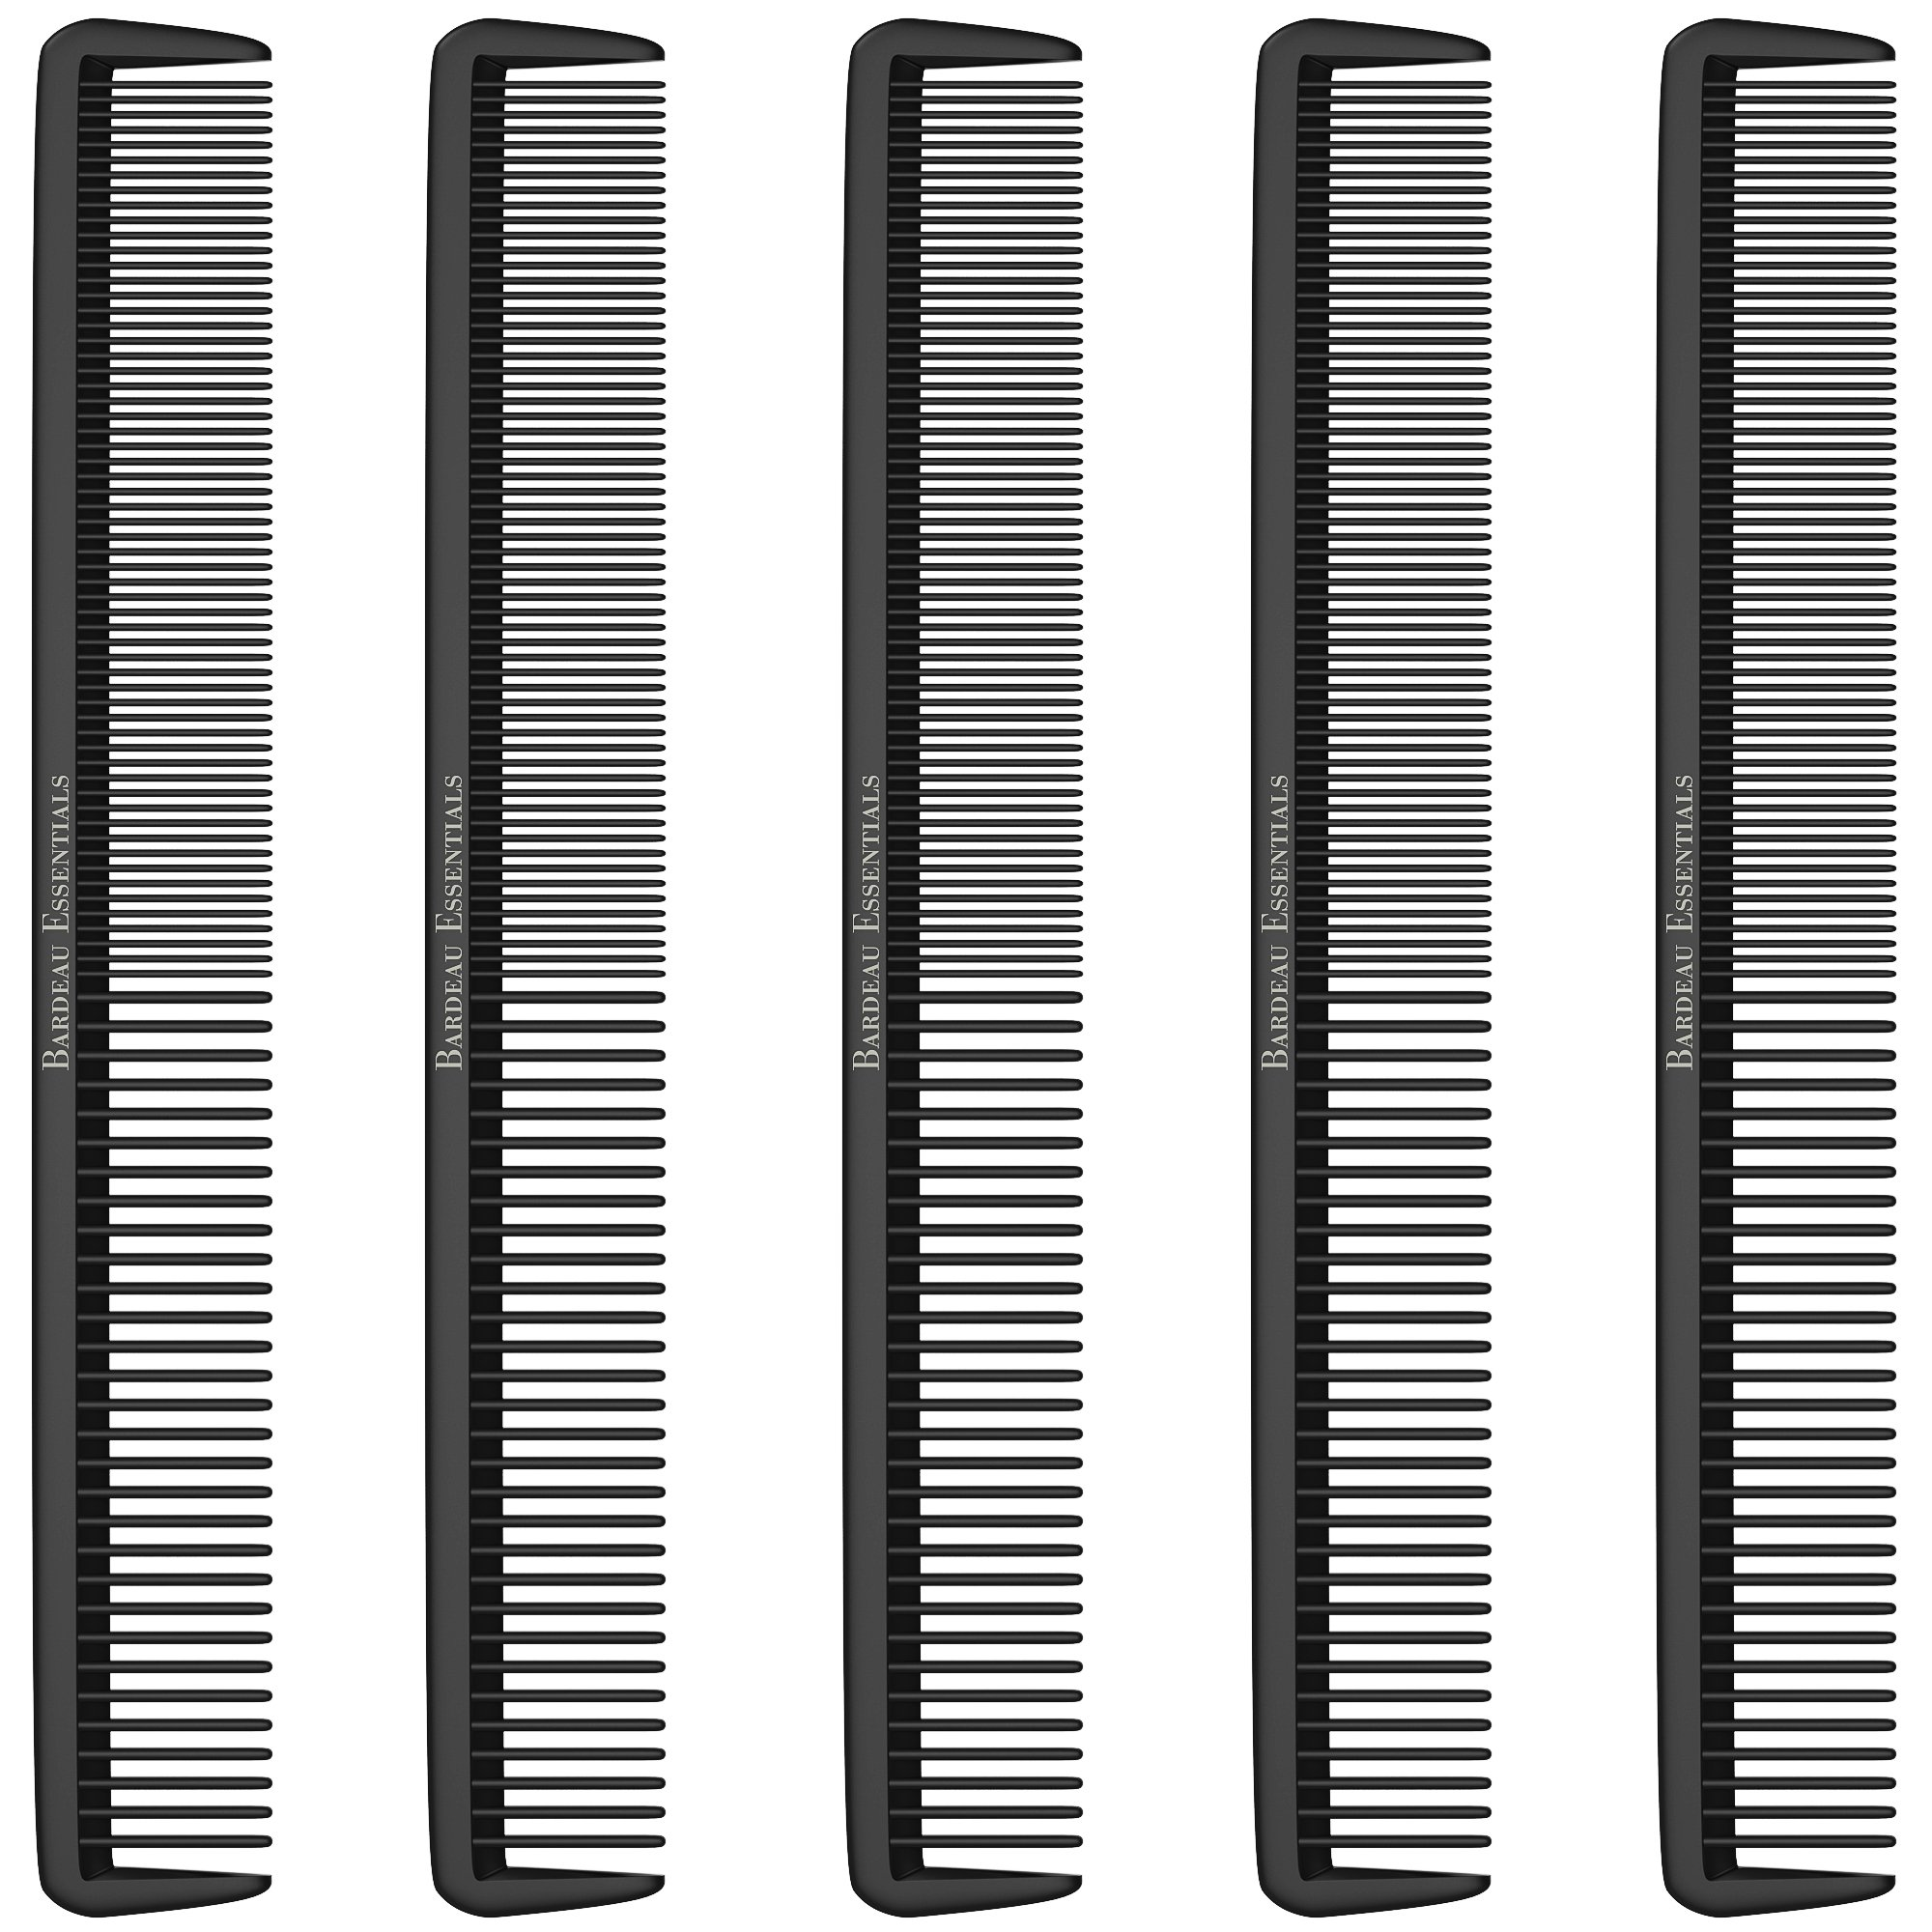 """Styling Comb (5 Pack) - Professional 8.75"""" Black Carbon Fiber Anti Static Chemical And Heat Resistant Hair Combs For All Hair Types For Men and Women - By Bardeau Essentials"""